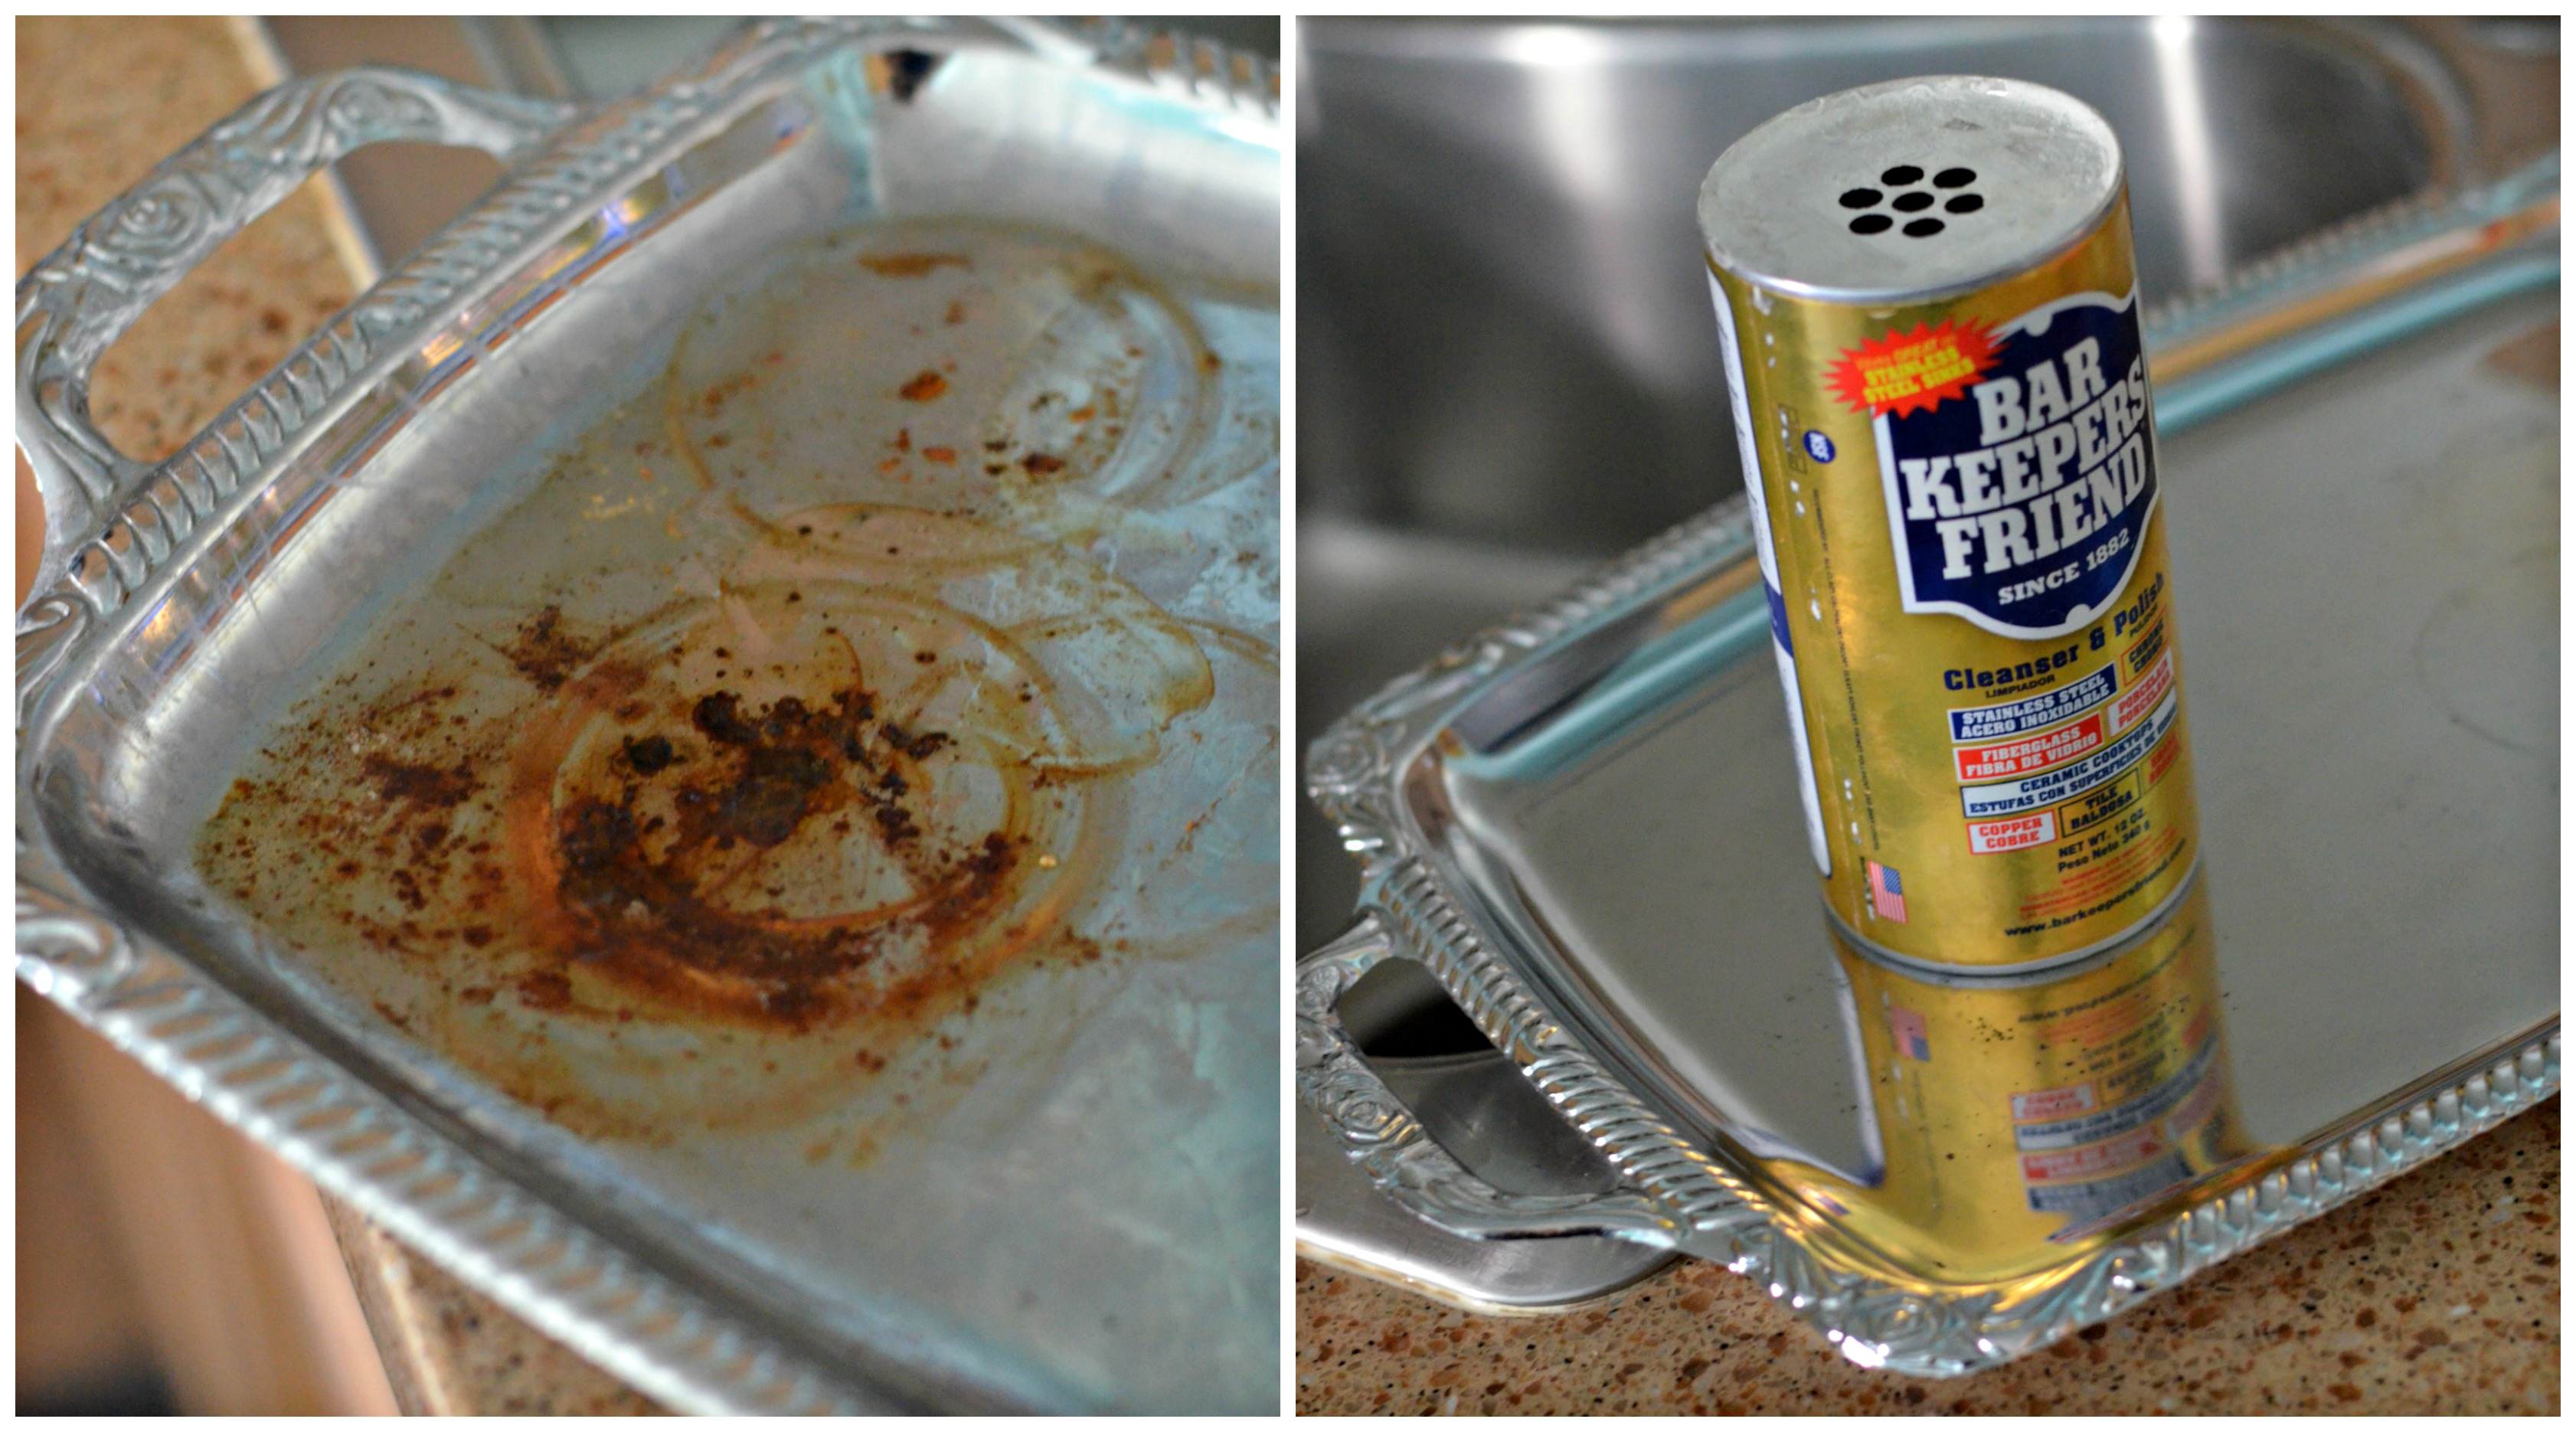 Bar Keepers Friend before and after on a serving tray